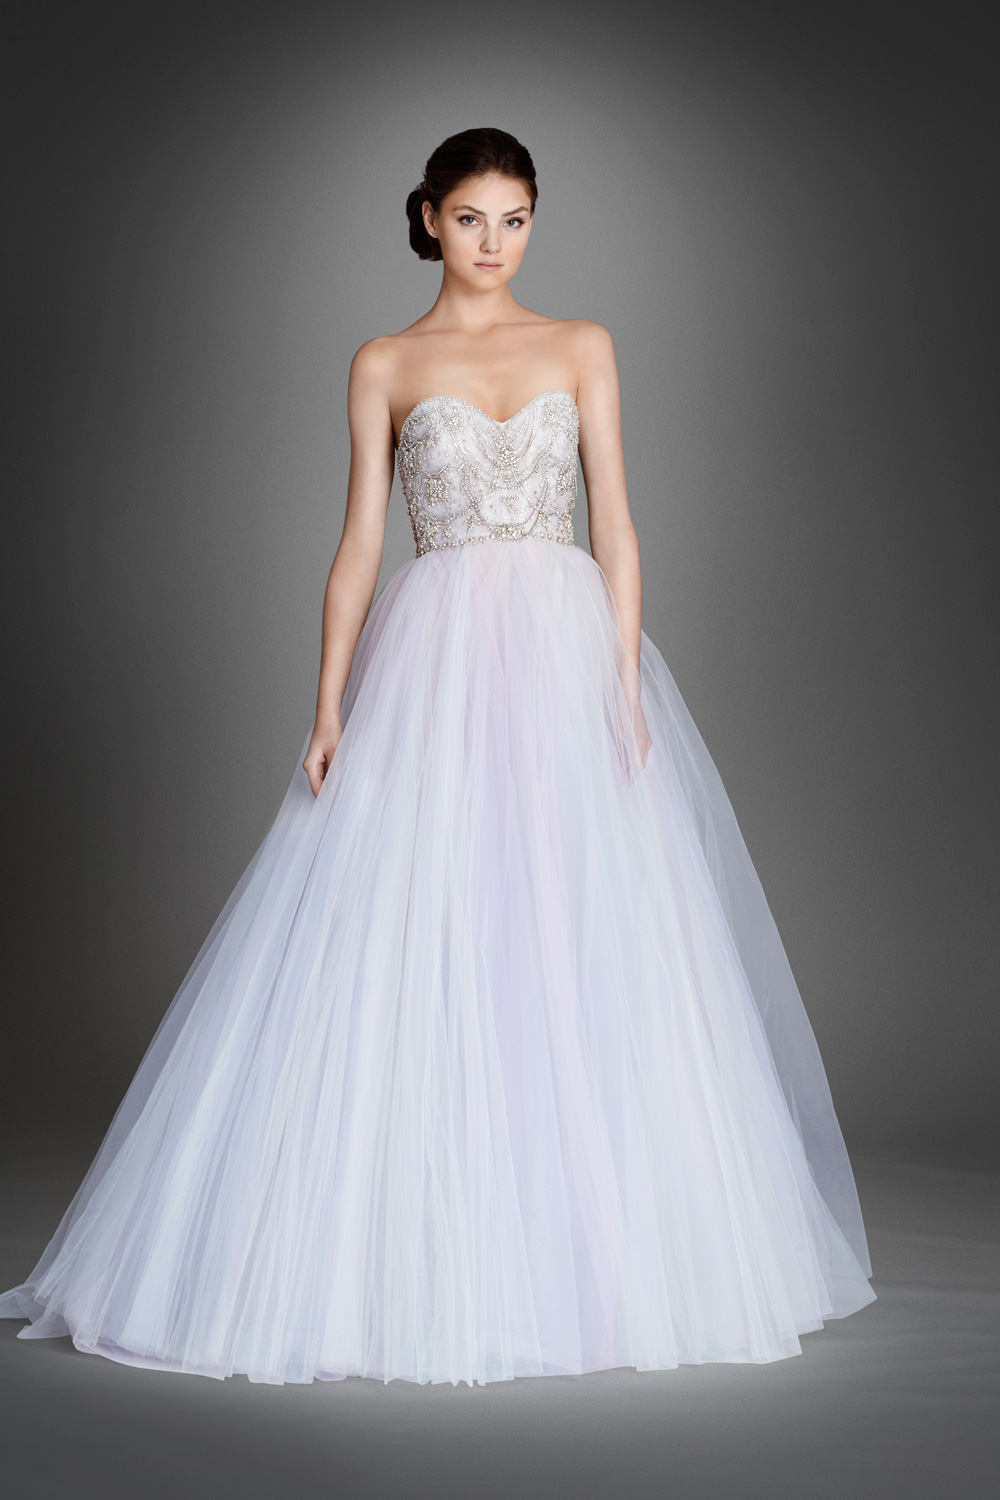 A silhouette guide to finding the perfect wedding dress jlm couture hayley paige nicoletta alvina valenta 9561 lazaro 3555 trumpet gown ombrellifo Choice Image